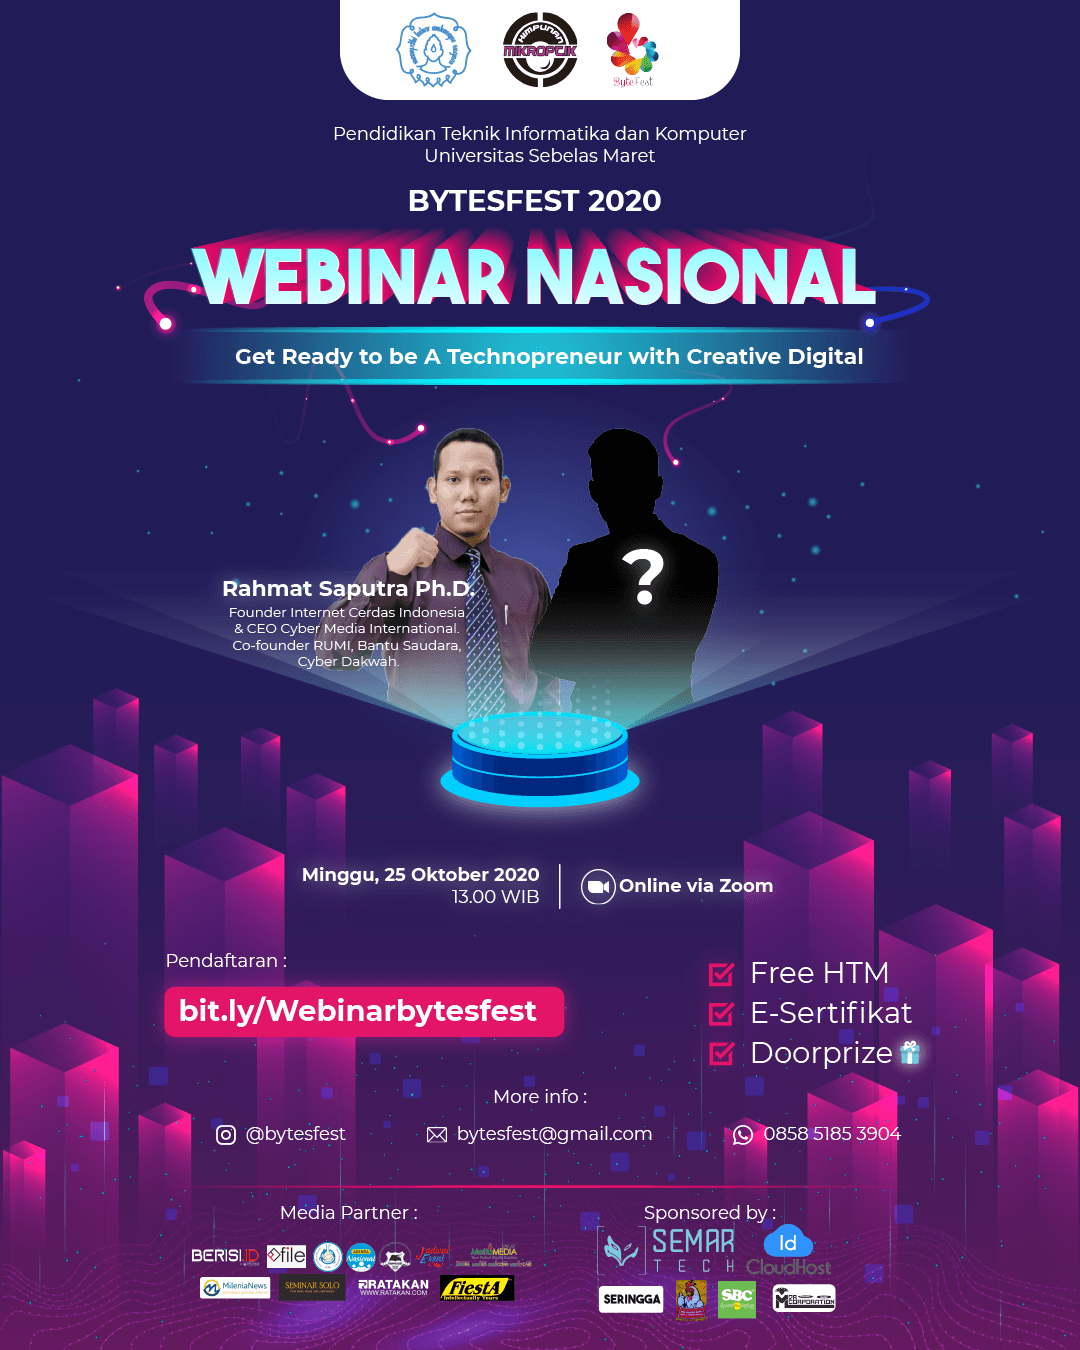 WEBINAR NASIONAL Get Ready to be A Technopreneur with Creative Digital